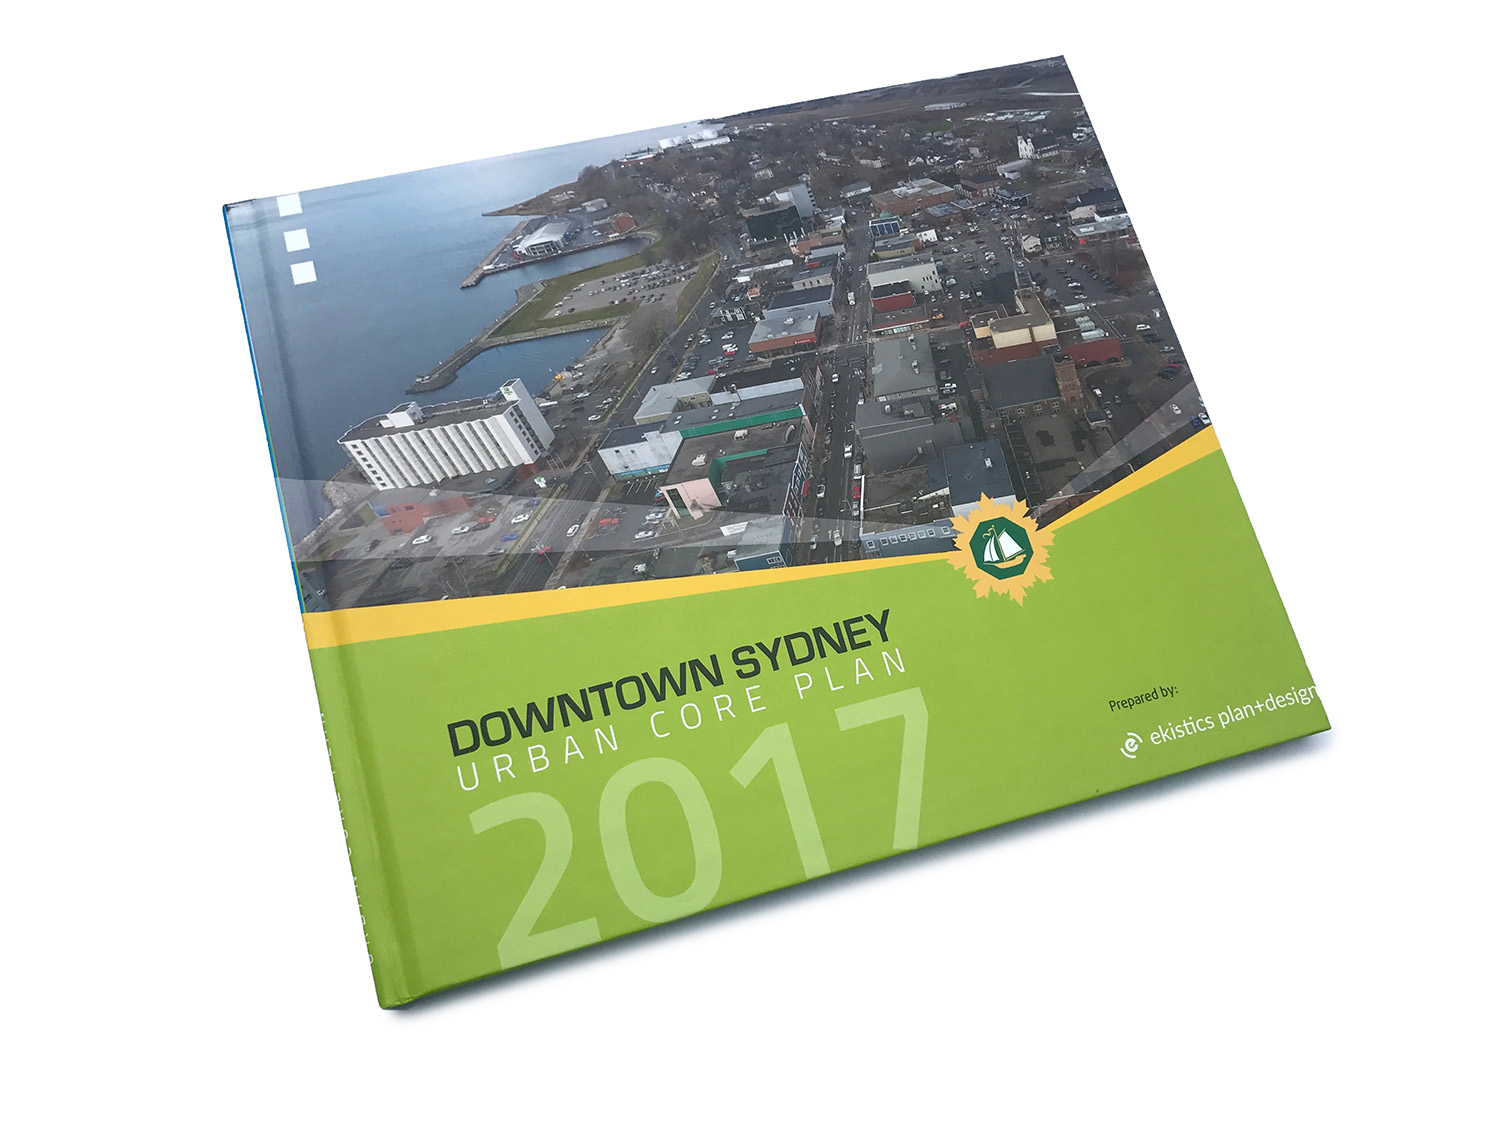 DOWNTOWN SYDNEY Urban Core Plan - Final Report Cover